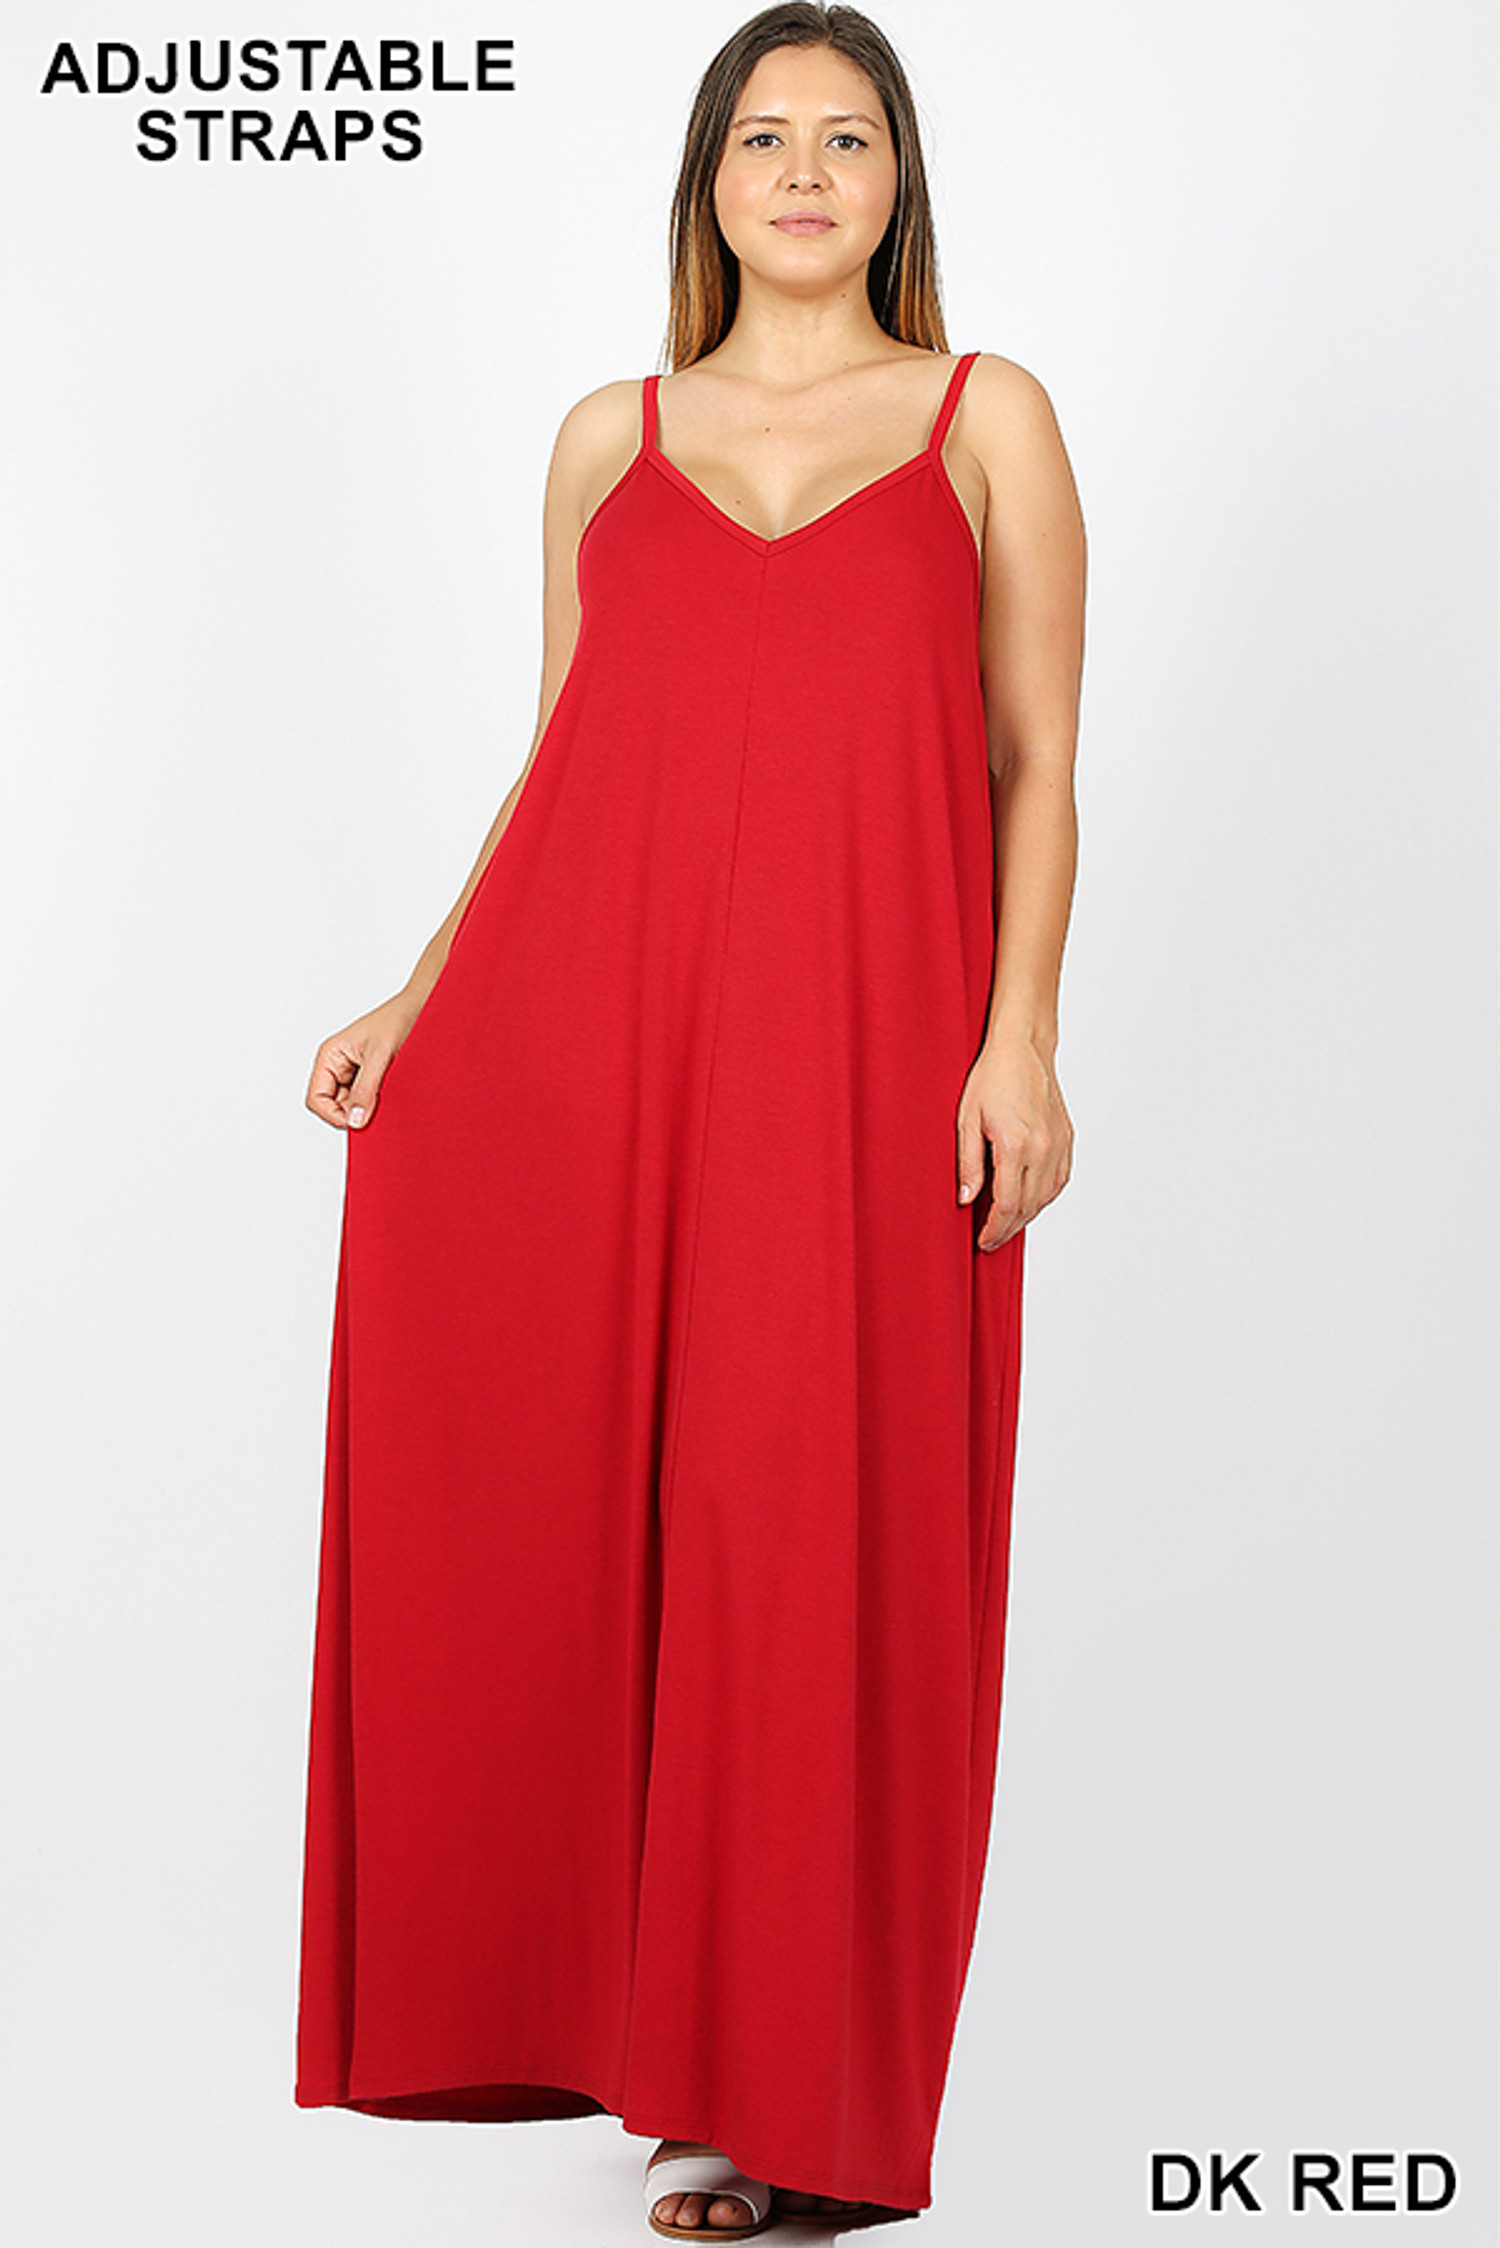 Adjustable V-Neck Rayon Plus Size Maxi Dress with Pockets - 51 Inch Length